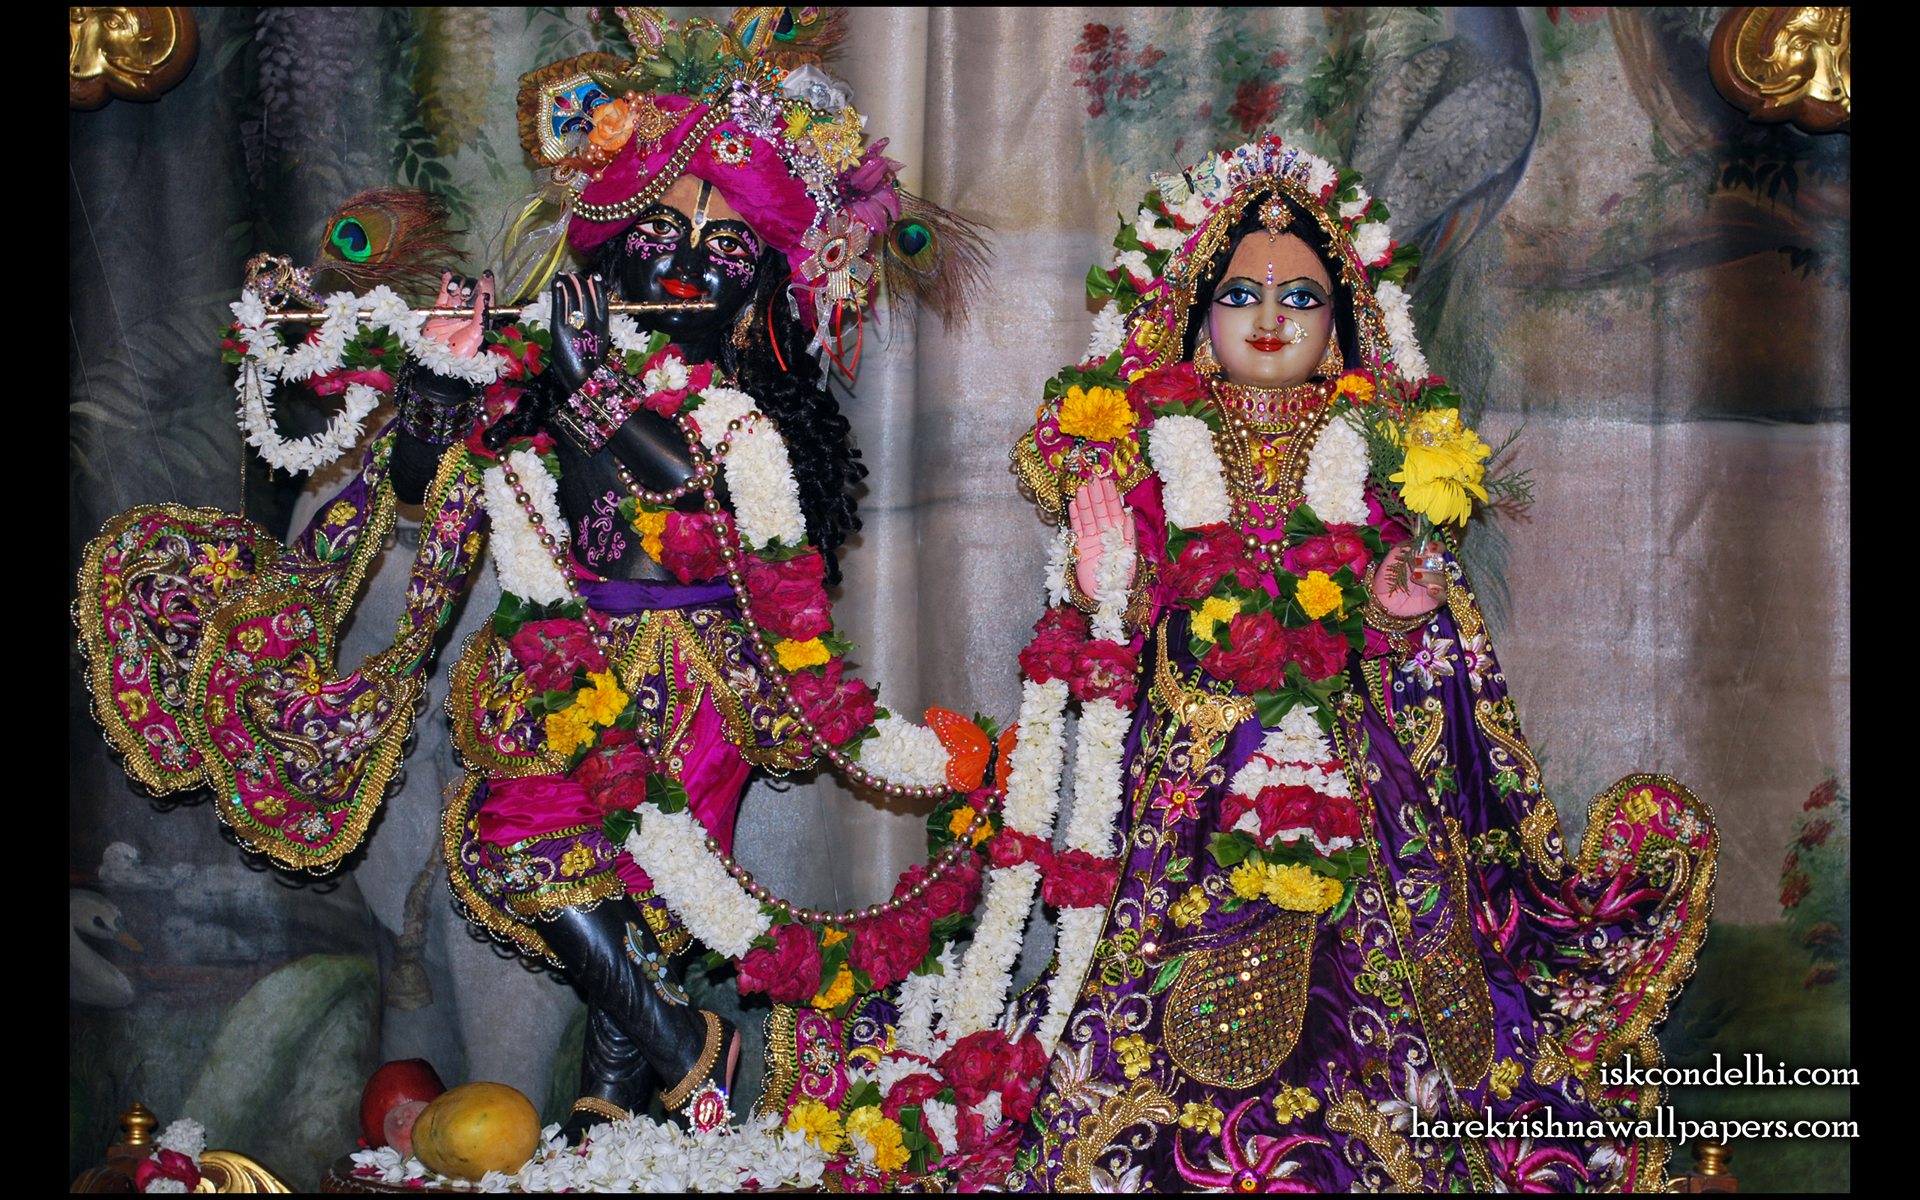 Sri Sri Radha Parthasarathi Wallpaper (002) Size 1920x1200 Download